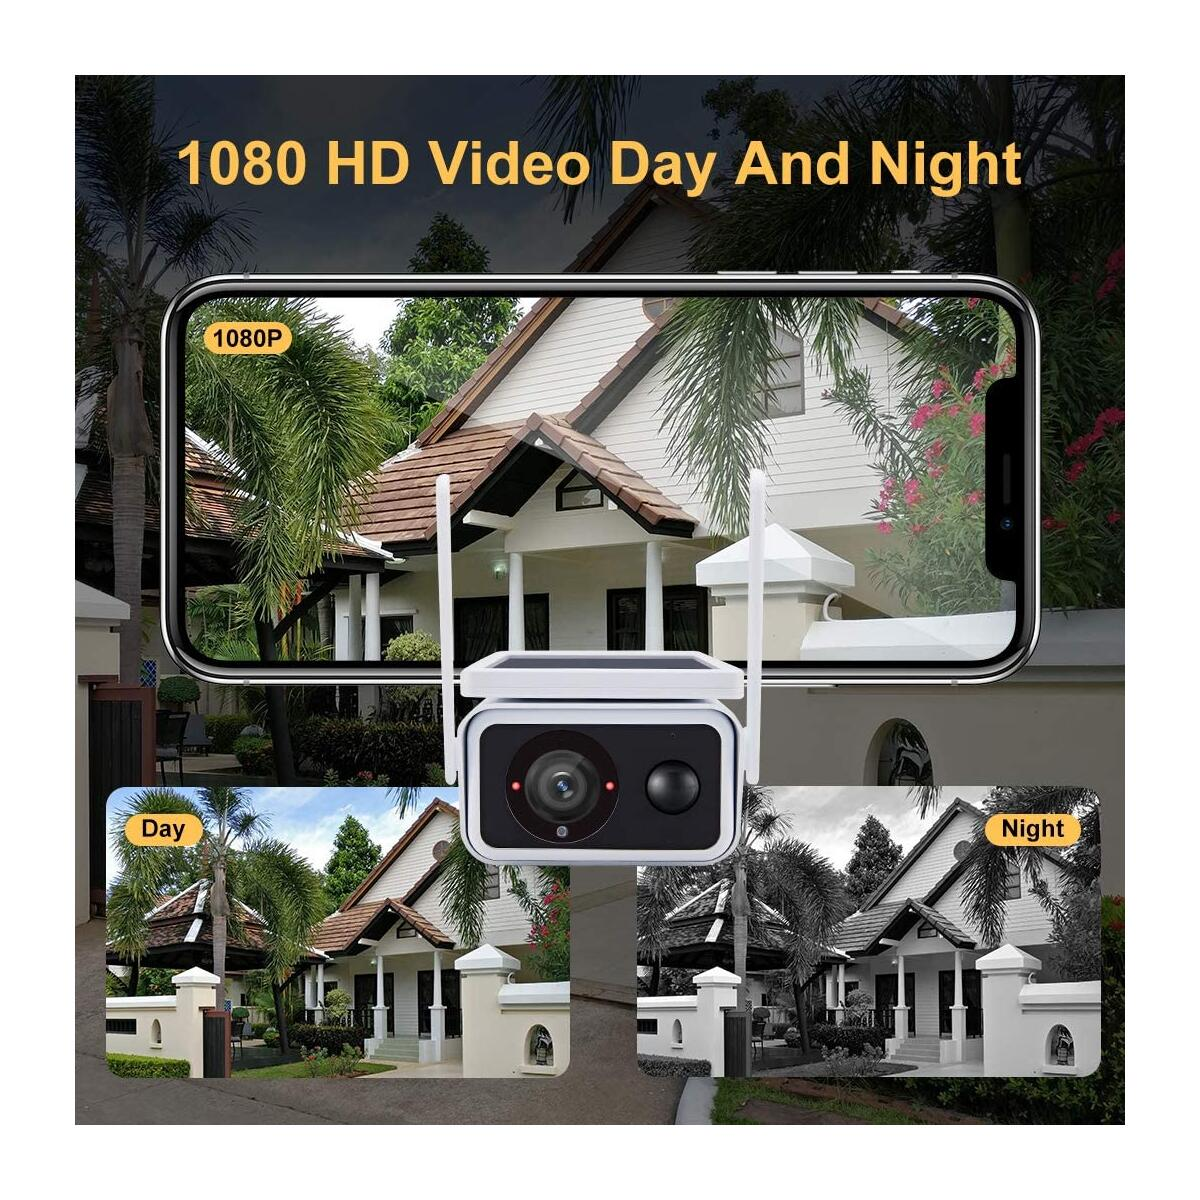 Doenssi Outdoor Security Camera Wireless, Solar Powered Rechargeable Camera WiFi 1080P Home IP Surveillance with PIR Motion Detection, Night Vision, 2-Way Audio, IP66 Waterproof, Cloud/SD, IOS/Android